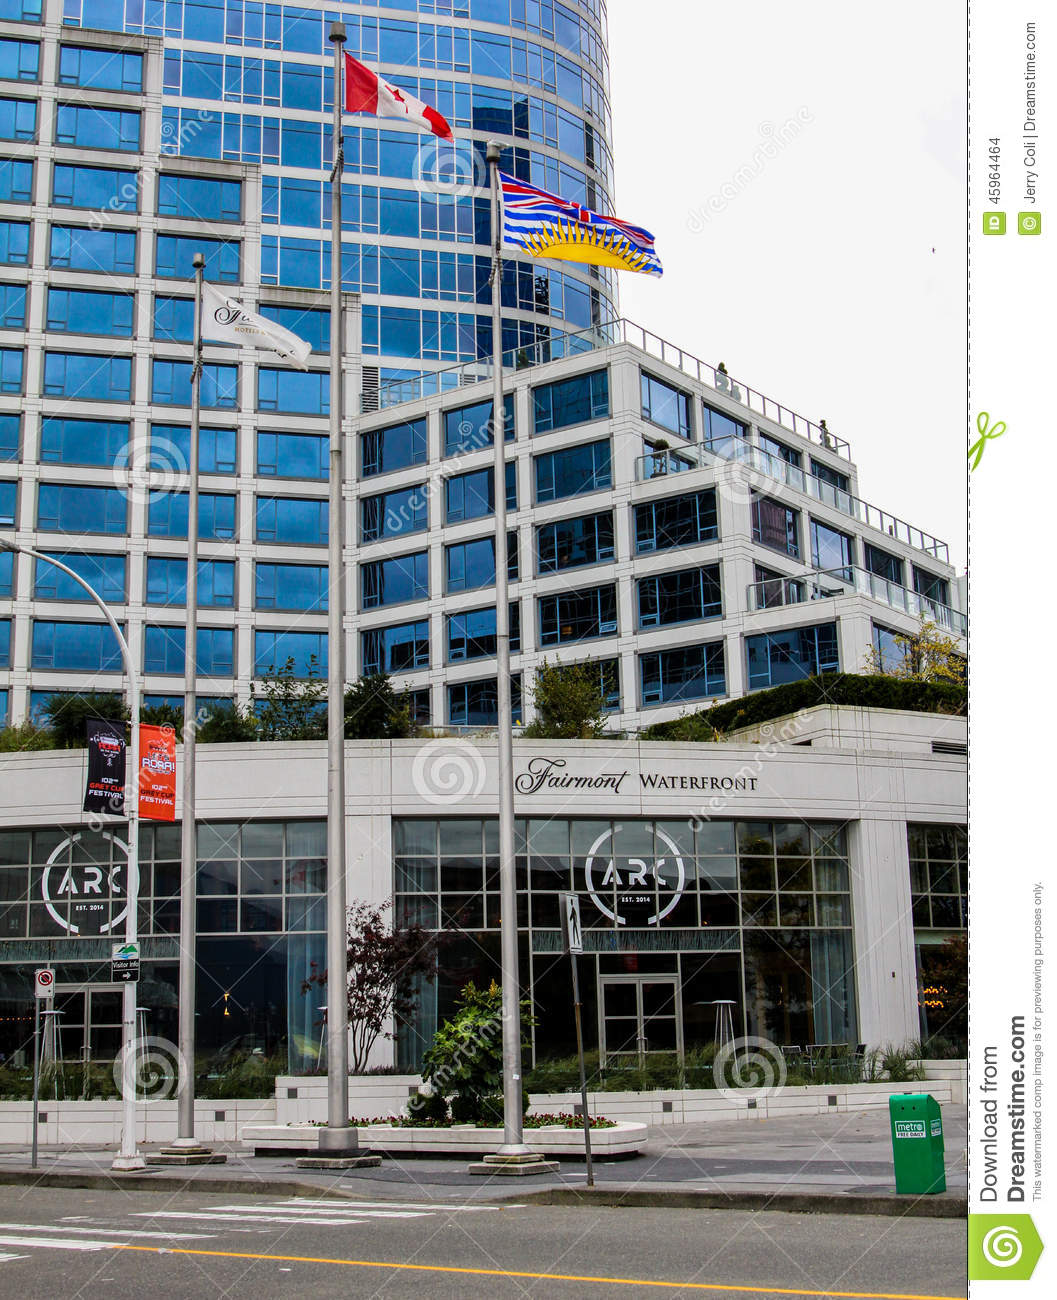 Fairmont Waterfront Hotel Vancouver Bc Editorial Stock Image Image 45964464